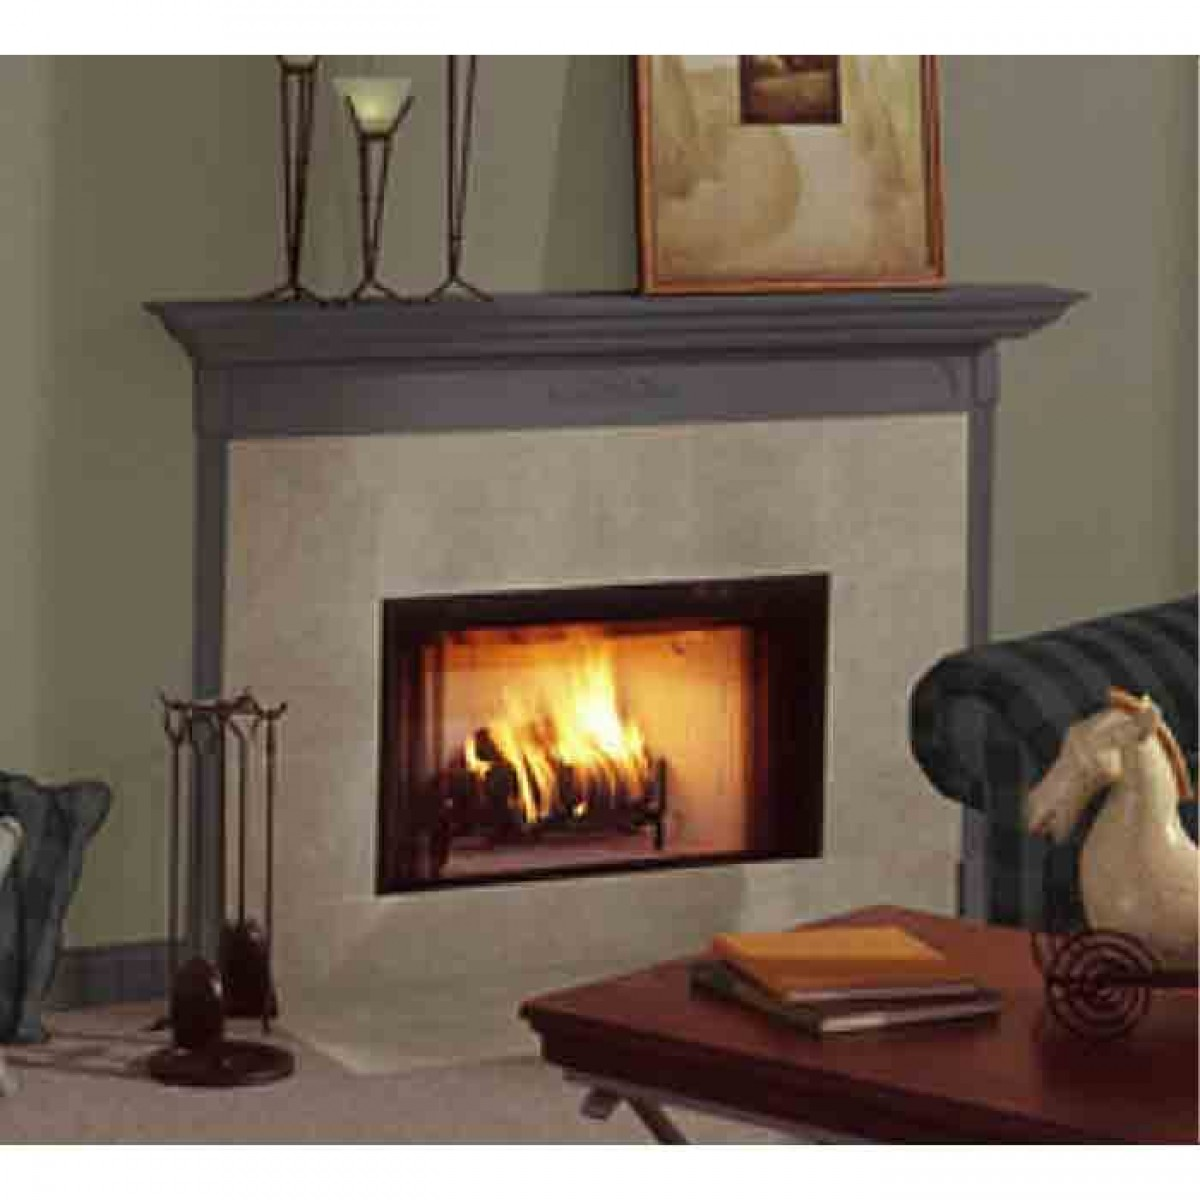 Majestic Bcbv36i Builders Choice Open Hearth B Vent Gas Fireplace